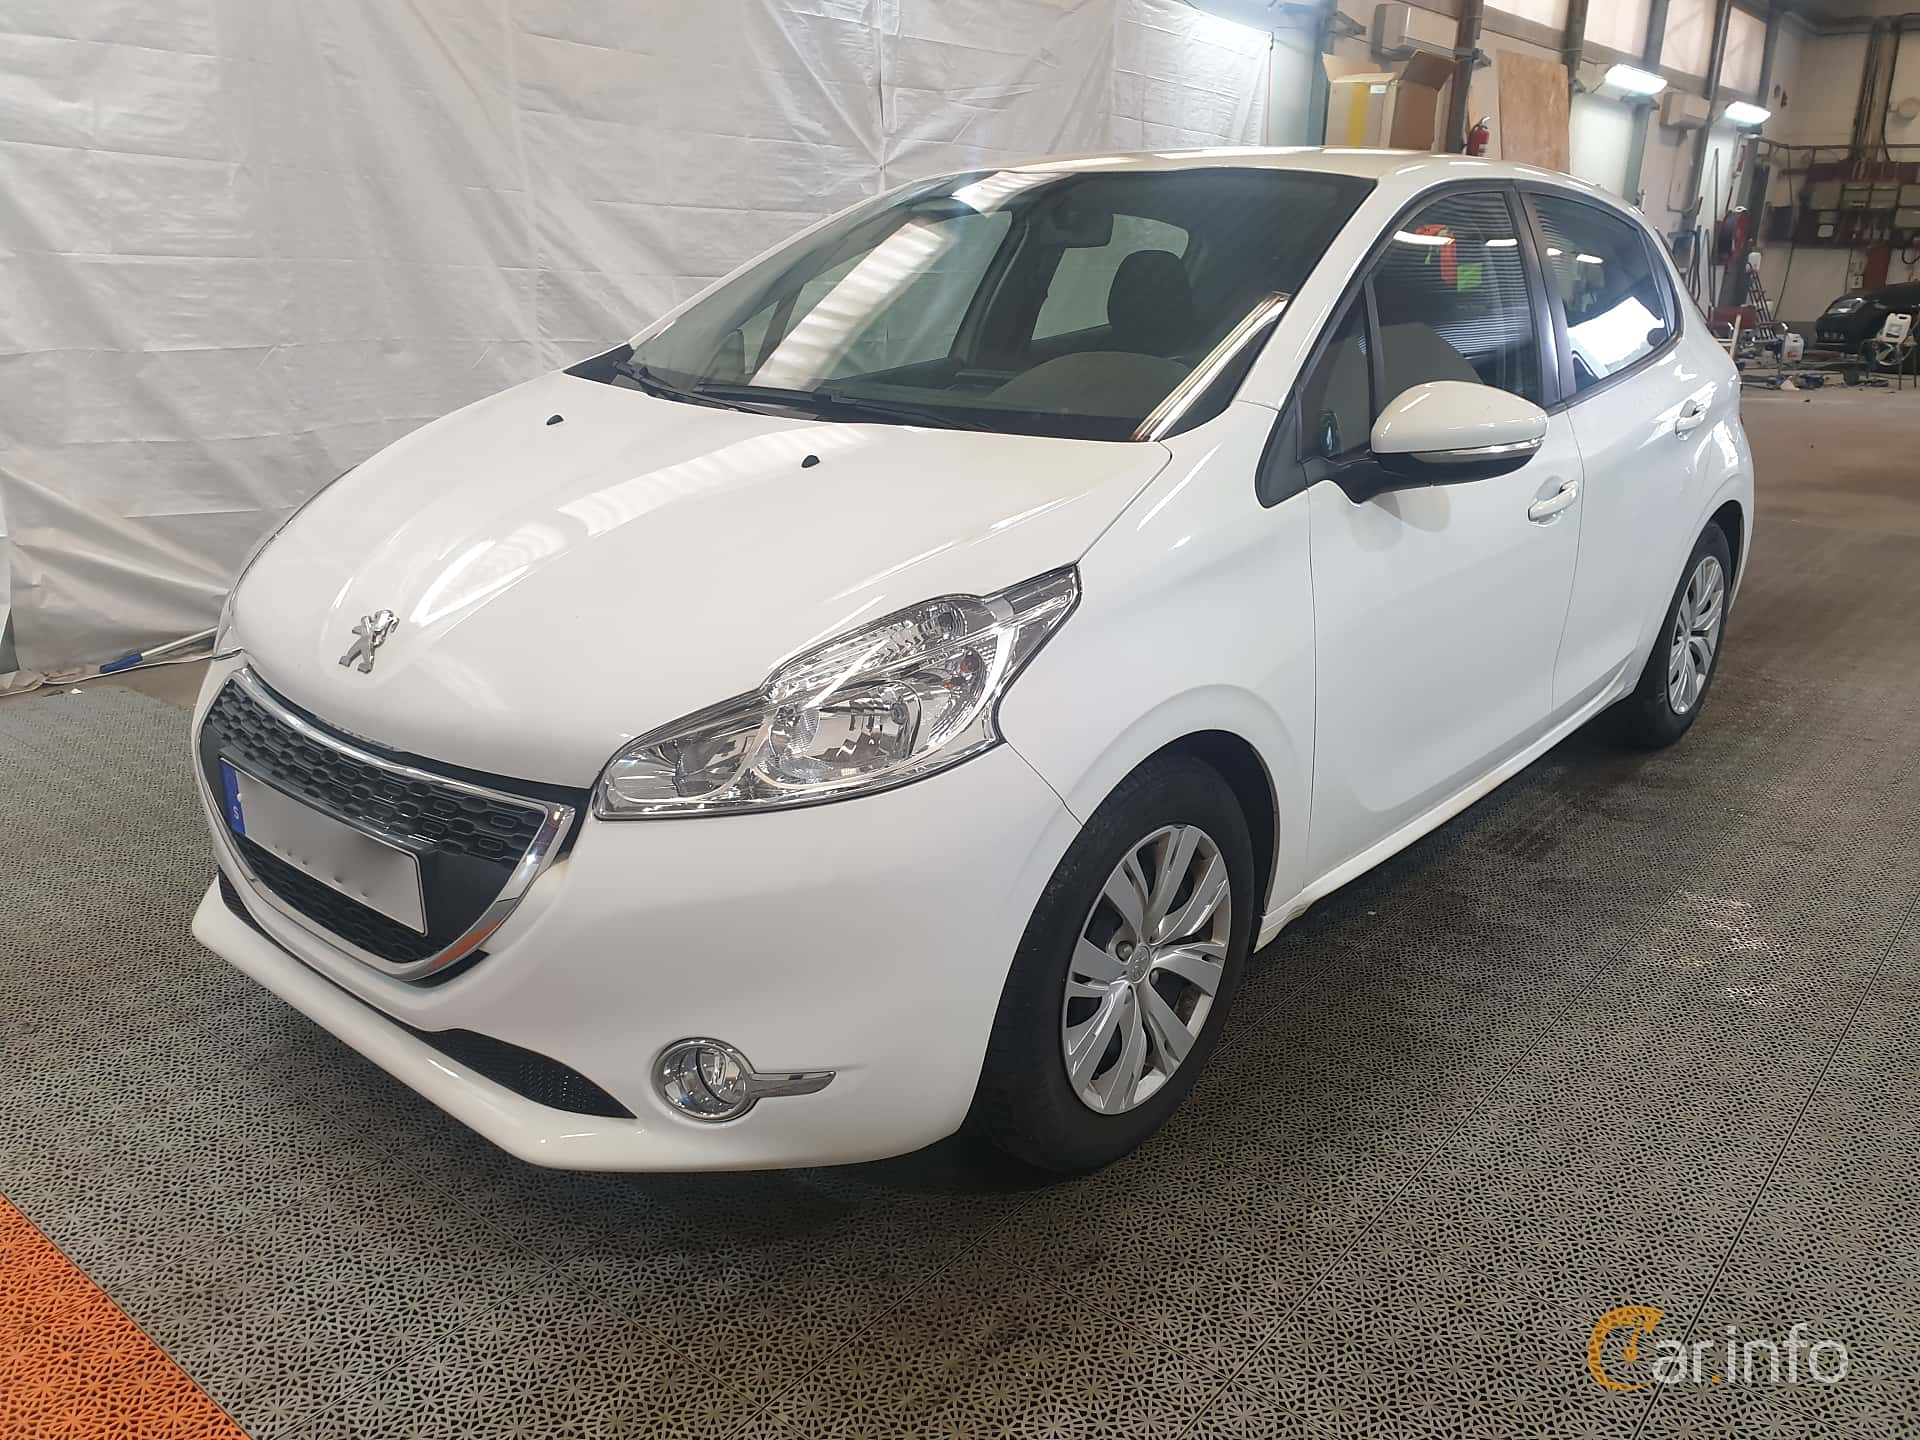 Peugeot 208 5-door 1.6 e-HDi FAP Manual, 92hp, 2015